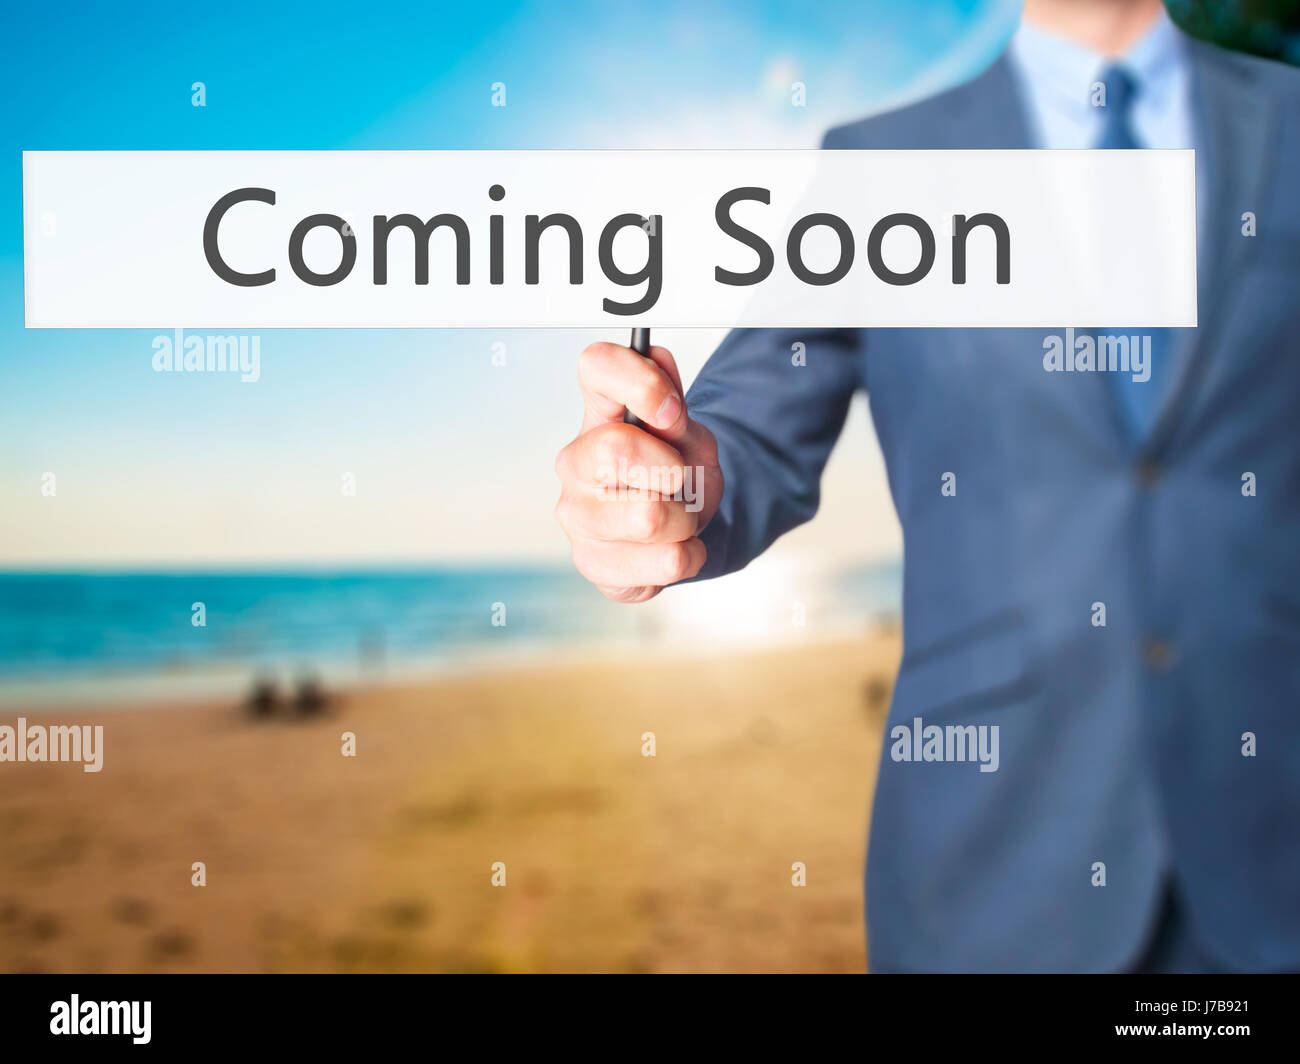 Coming Soon - Business man showing sign  Business